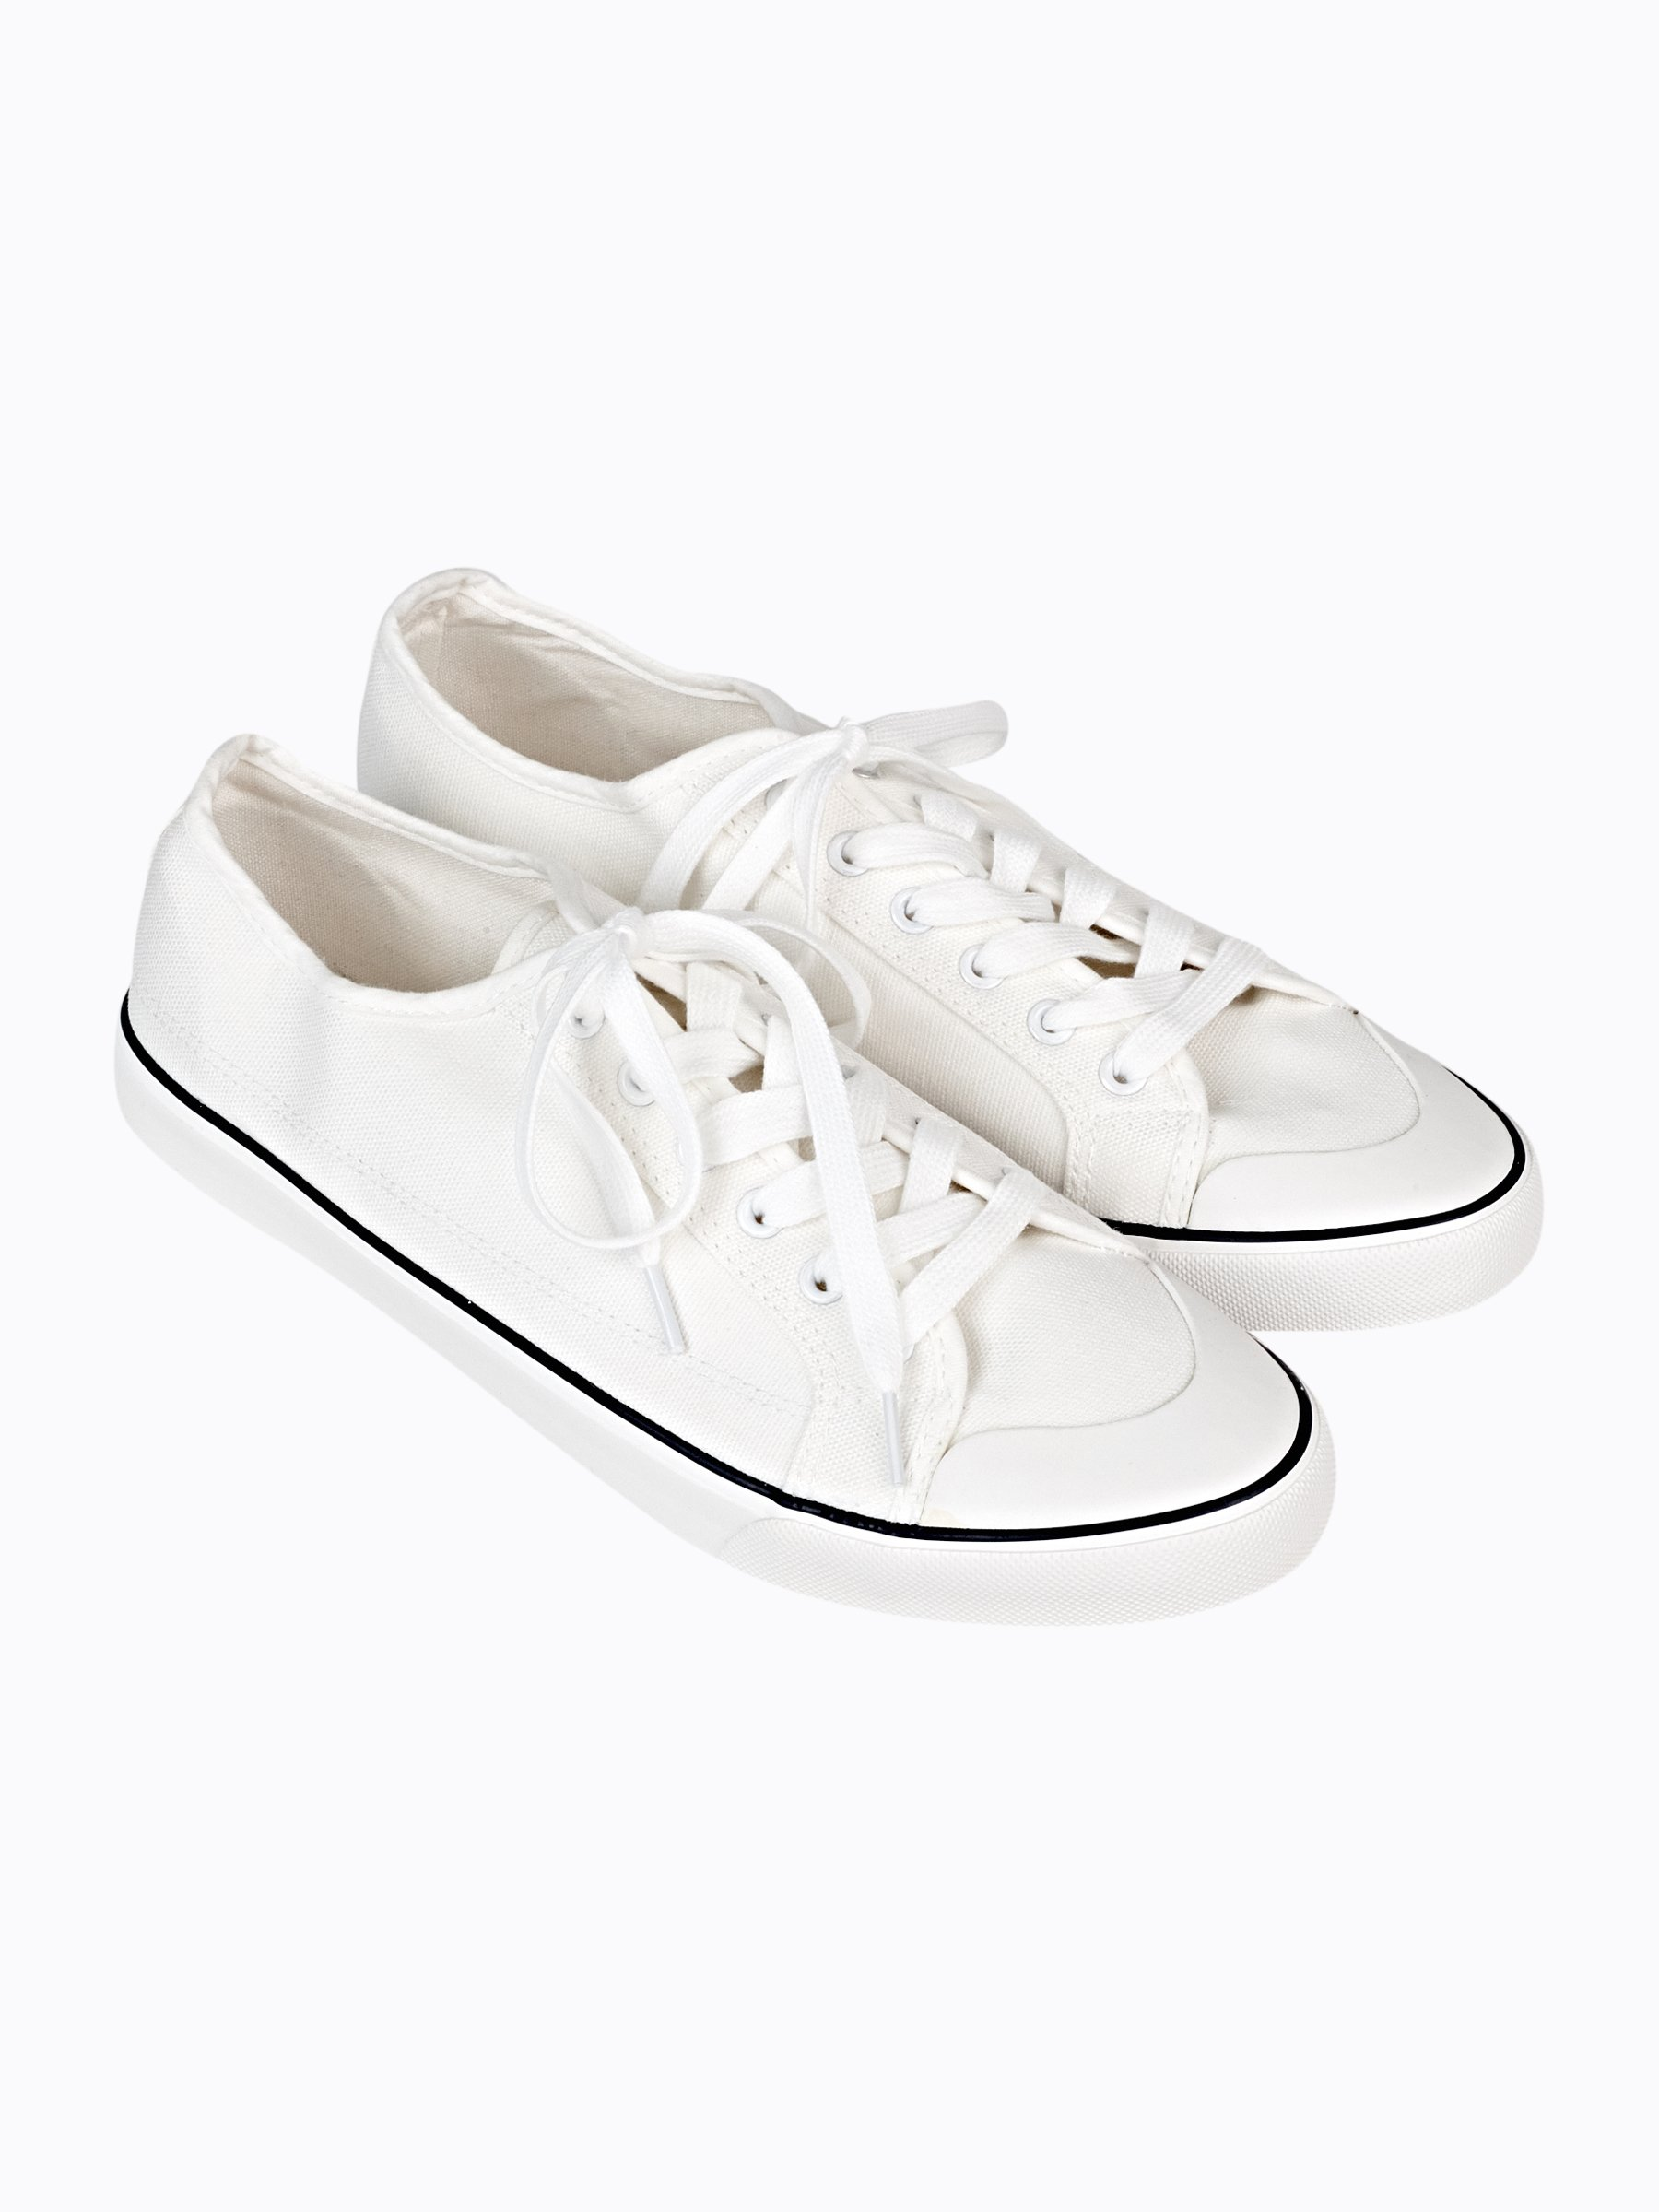 BASIC CANVAS SNEAKERS | GATE